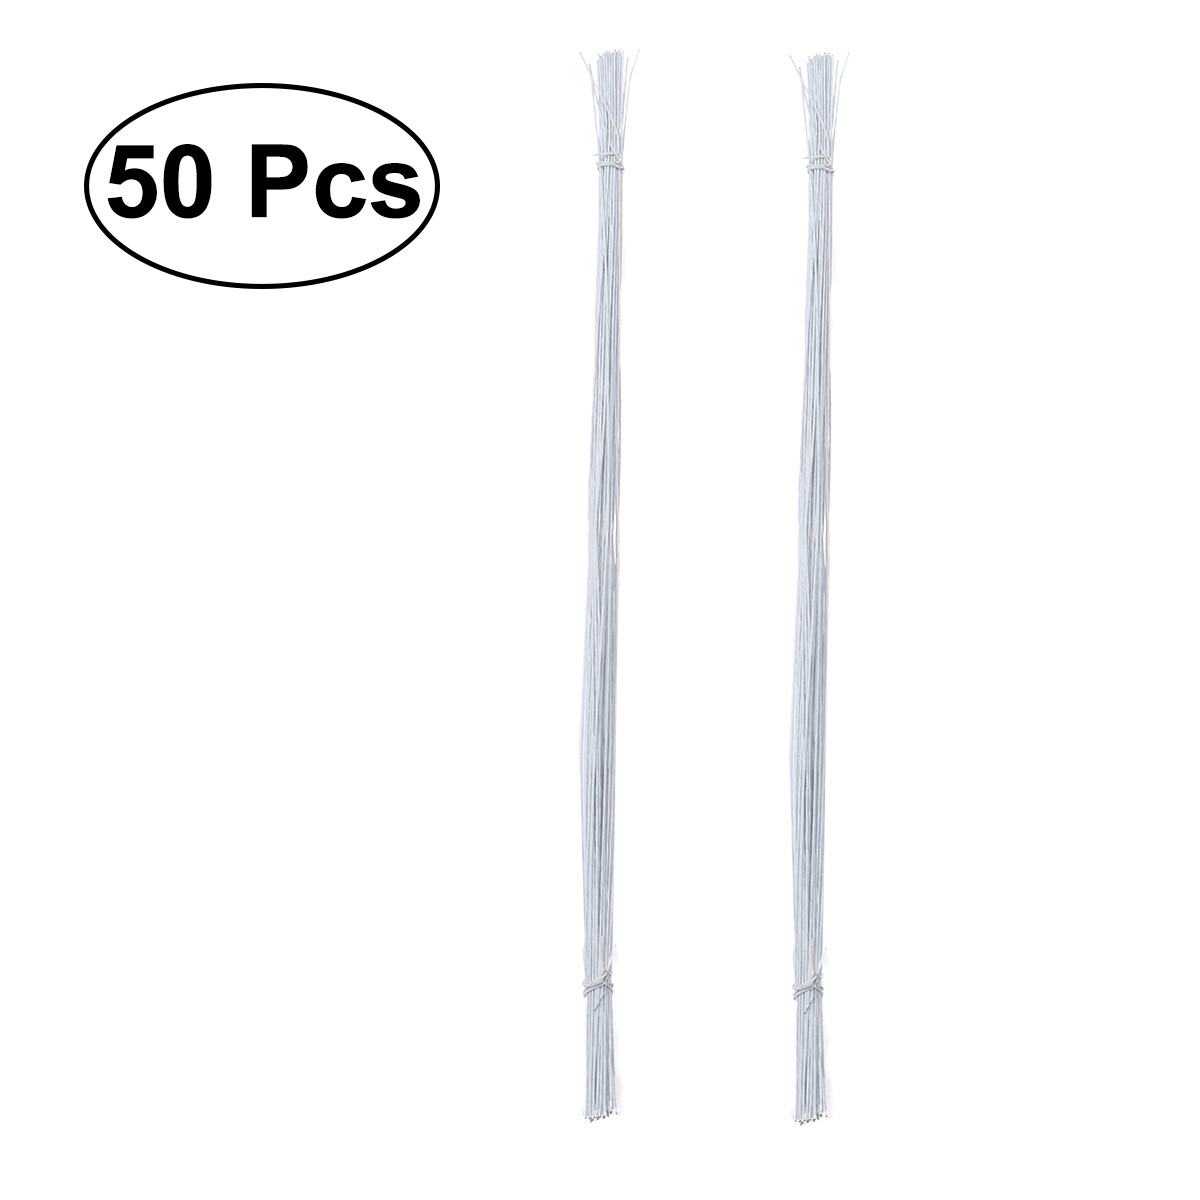 50pcs 24 Gauge White Floral Wire Stem Handmade Artificial